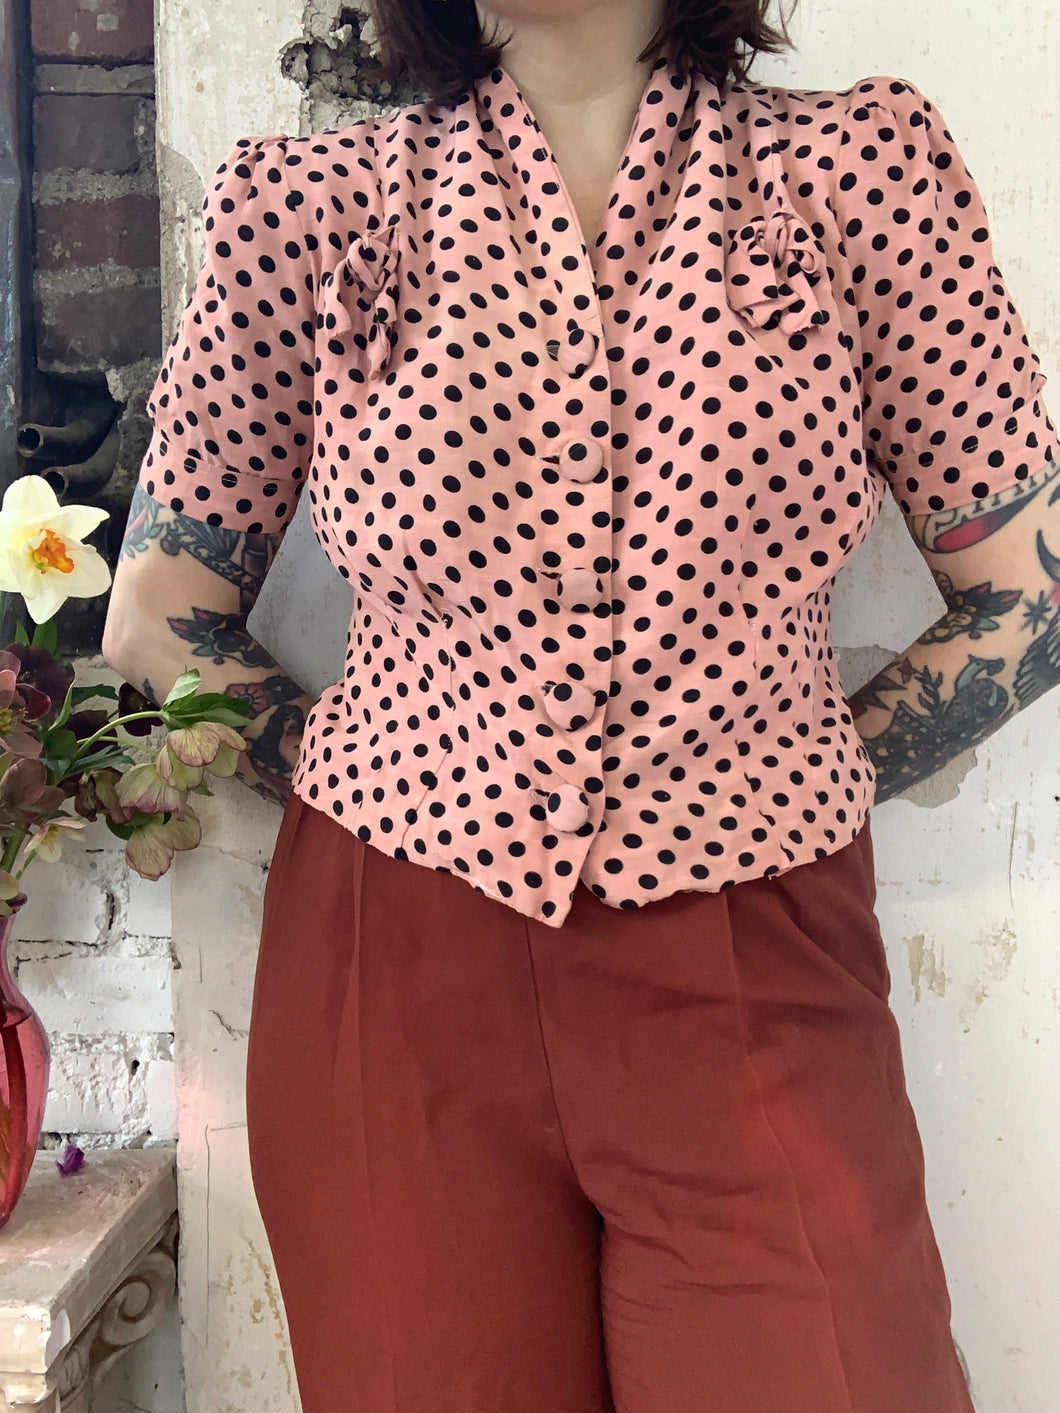 1940s Polka Dot Top